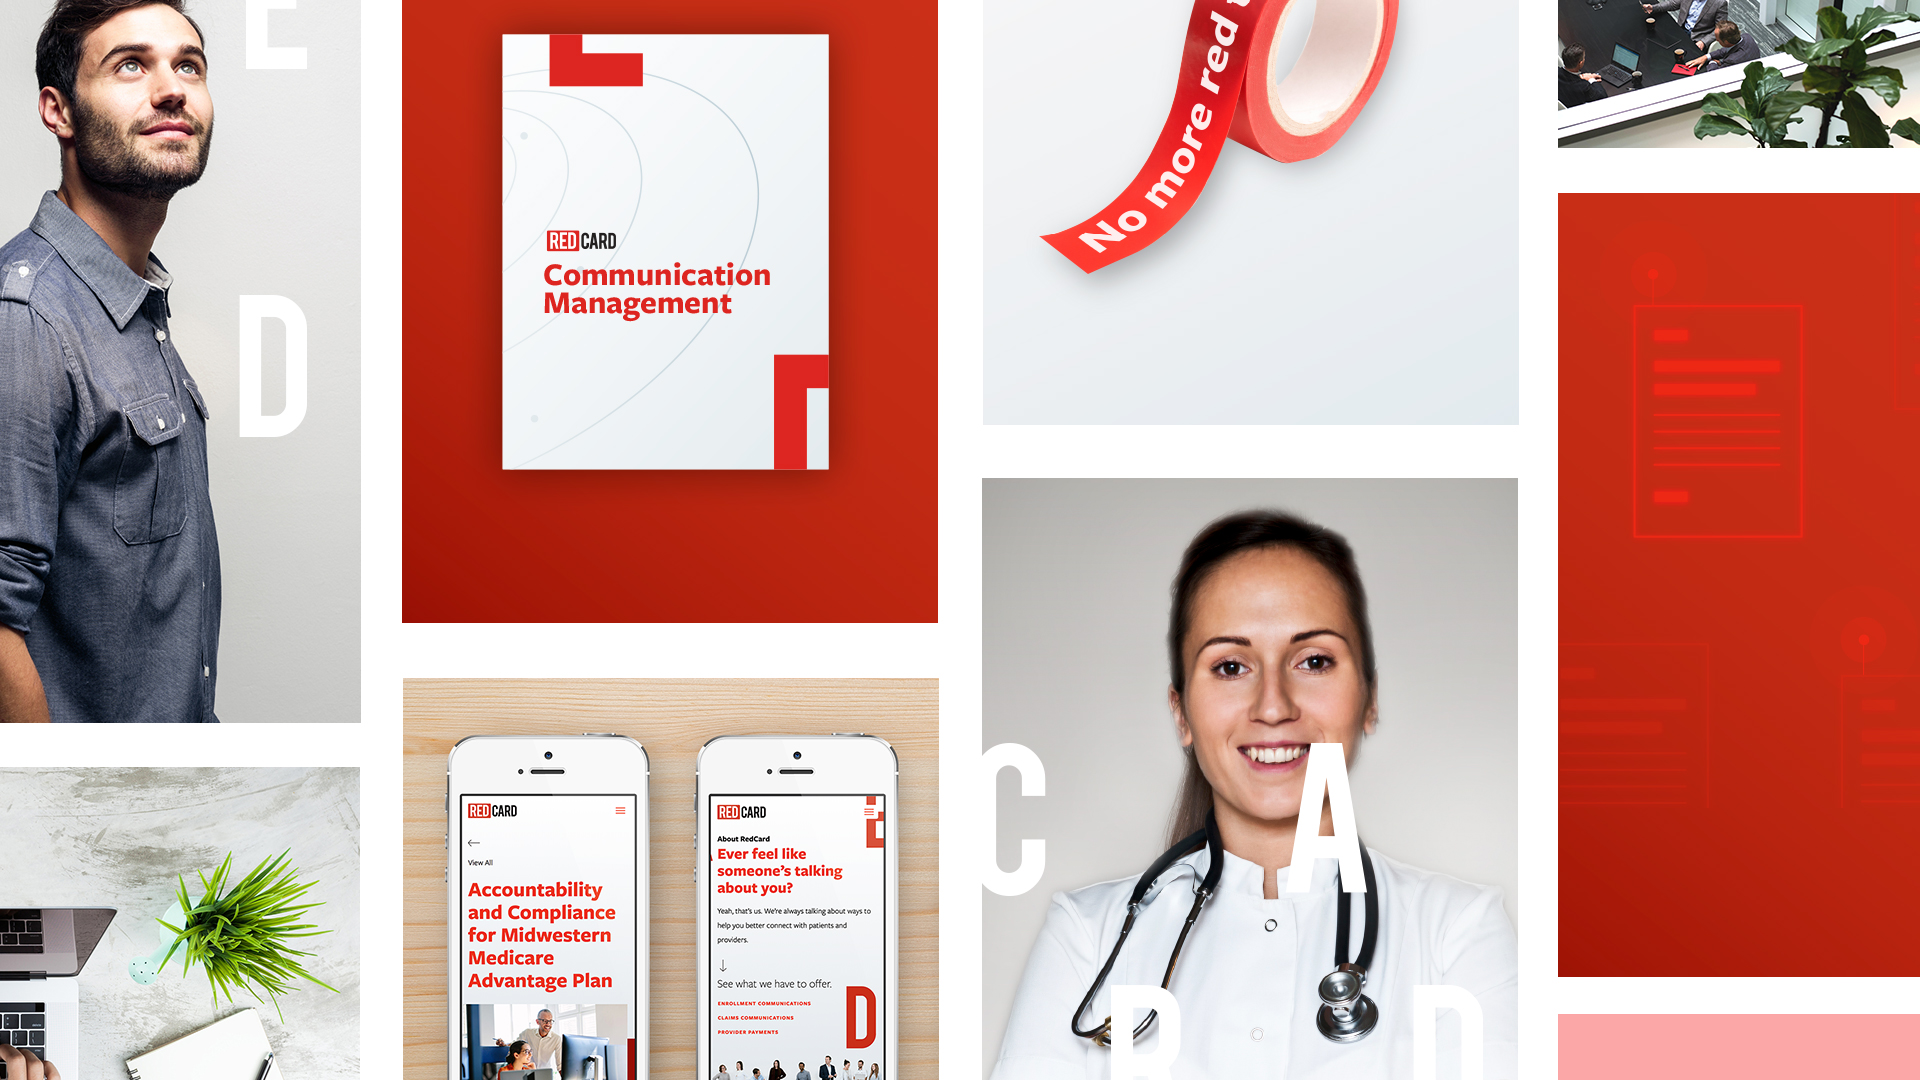 Collage of brand elements created by design team lead Jessica for healthcare marketing company RedCard